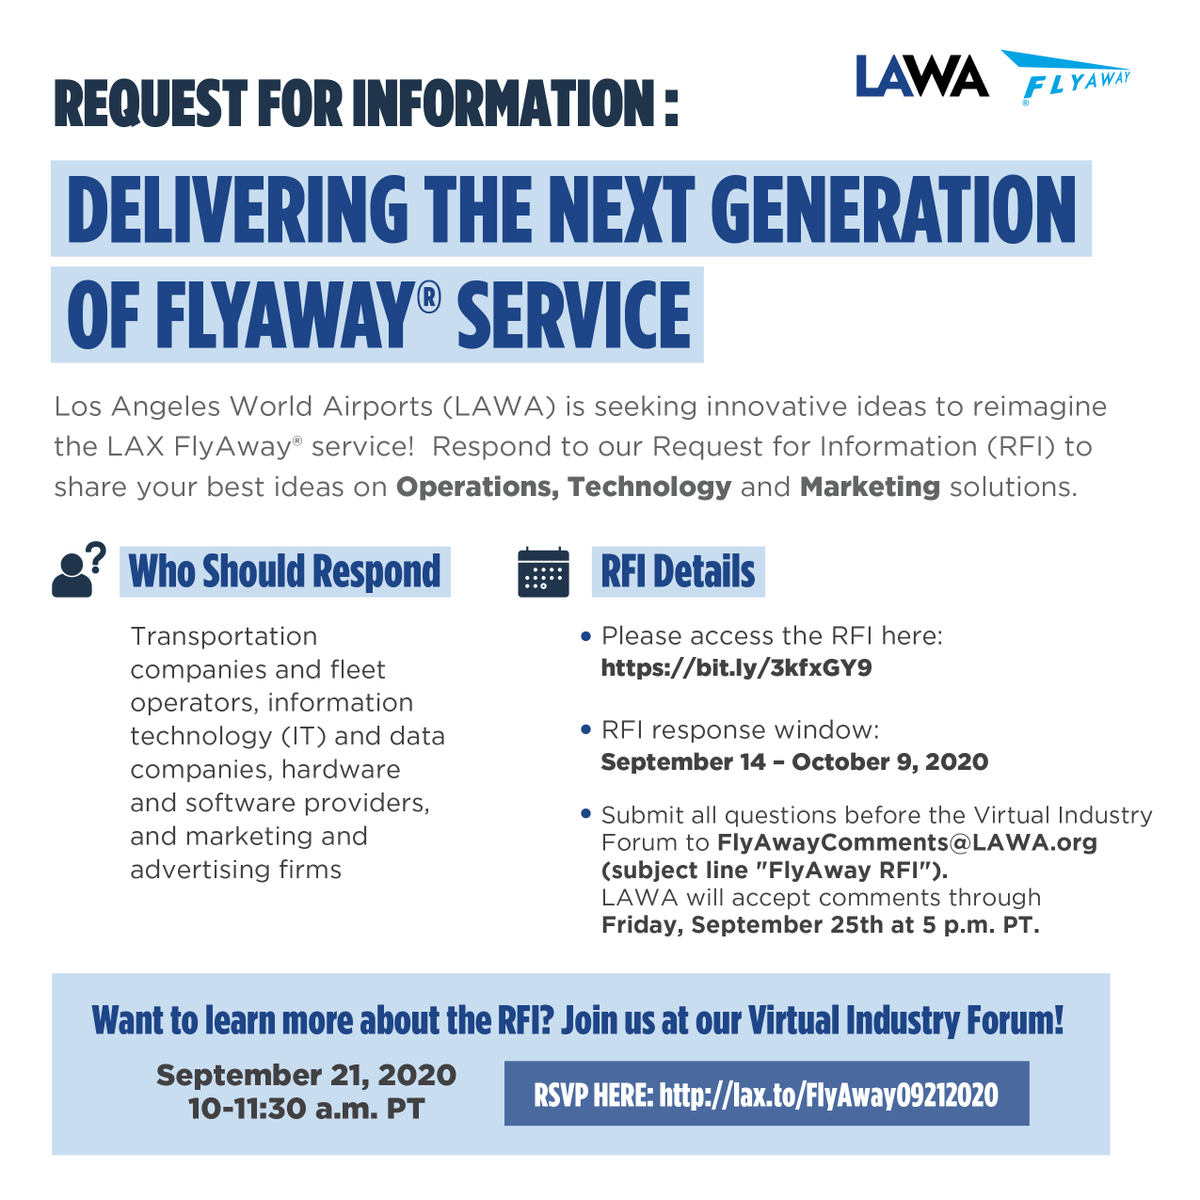 We are imagining the future of the FlyAway bus service to LAX and looking for the best ideas for operations, technology and marketing. See the official Request for Information here: https://t.co/zdOsEGwd0U #RFI https://t.co/QhzFKNJUDK